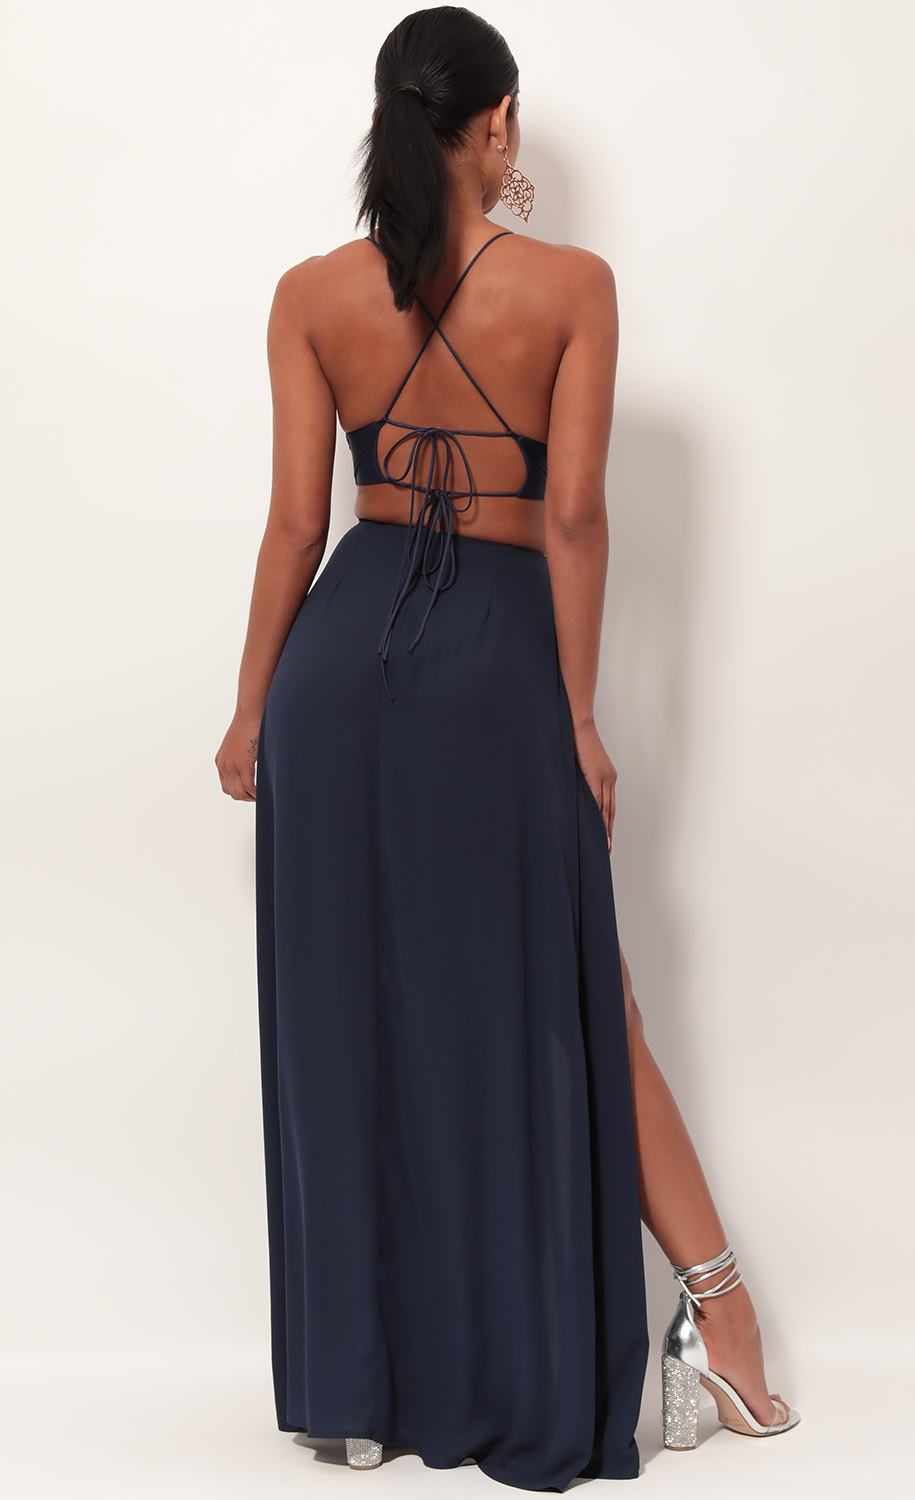 Paris Floral Embroidered Maxi Dress in Navy